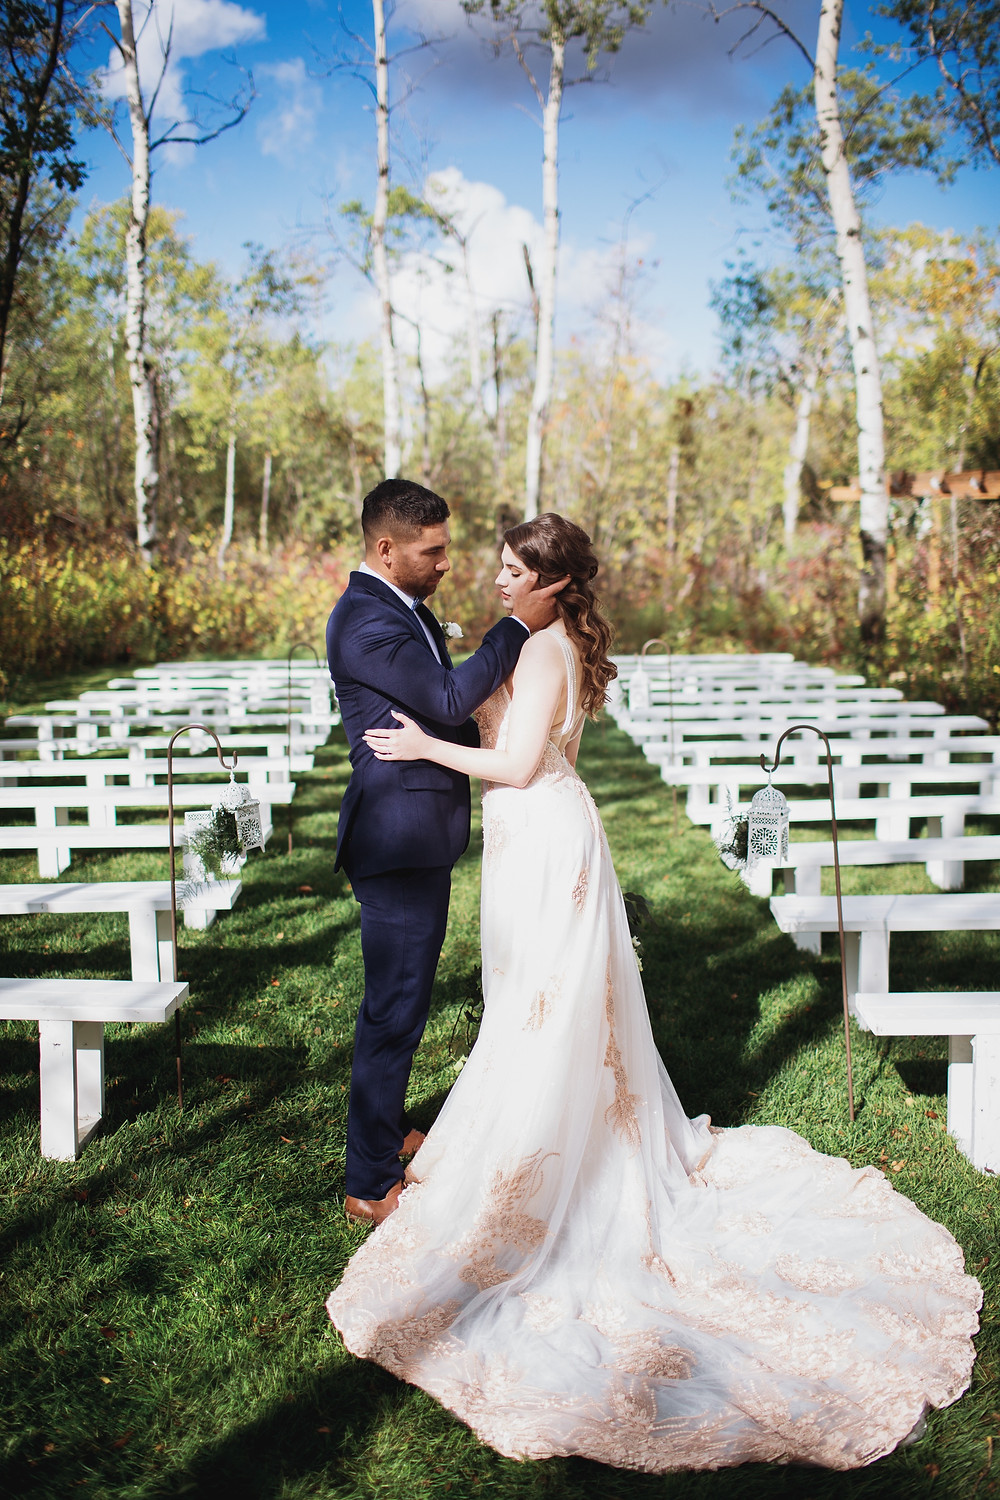 Manitoba wedding venue in the Interlake, Kinloch Grove. Bridal gown by Anna Lang Bridal. Suit by Eph Apparels.